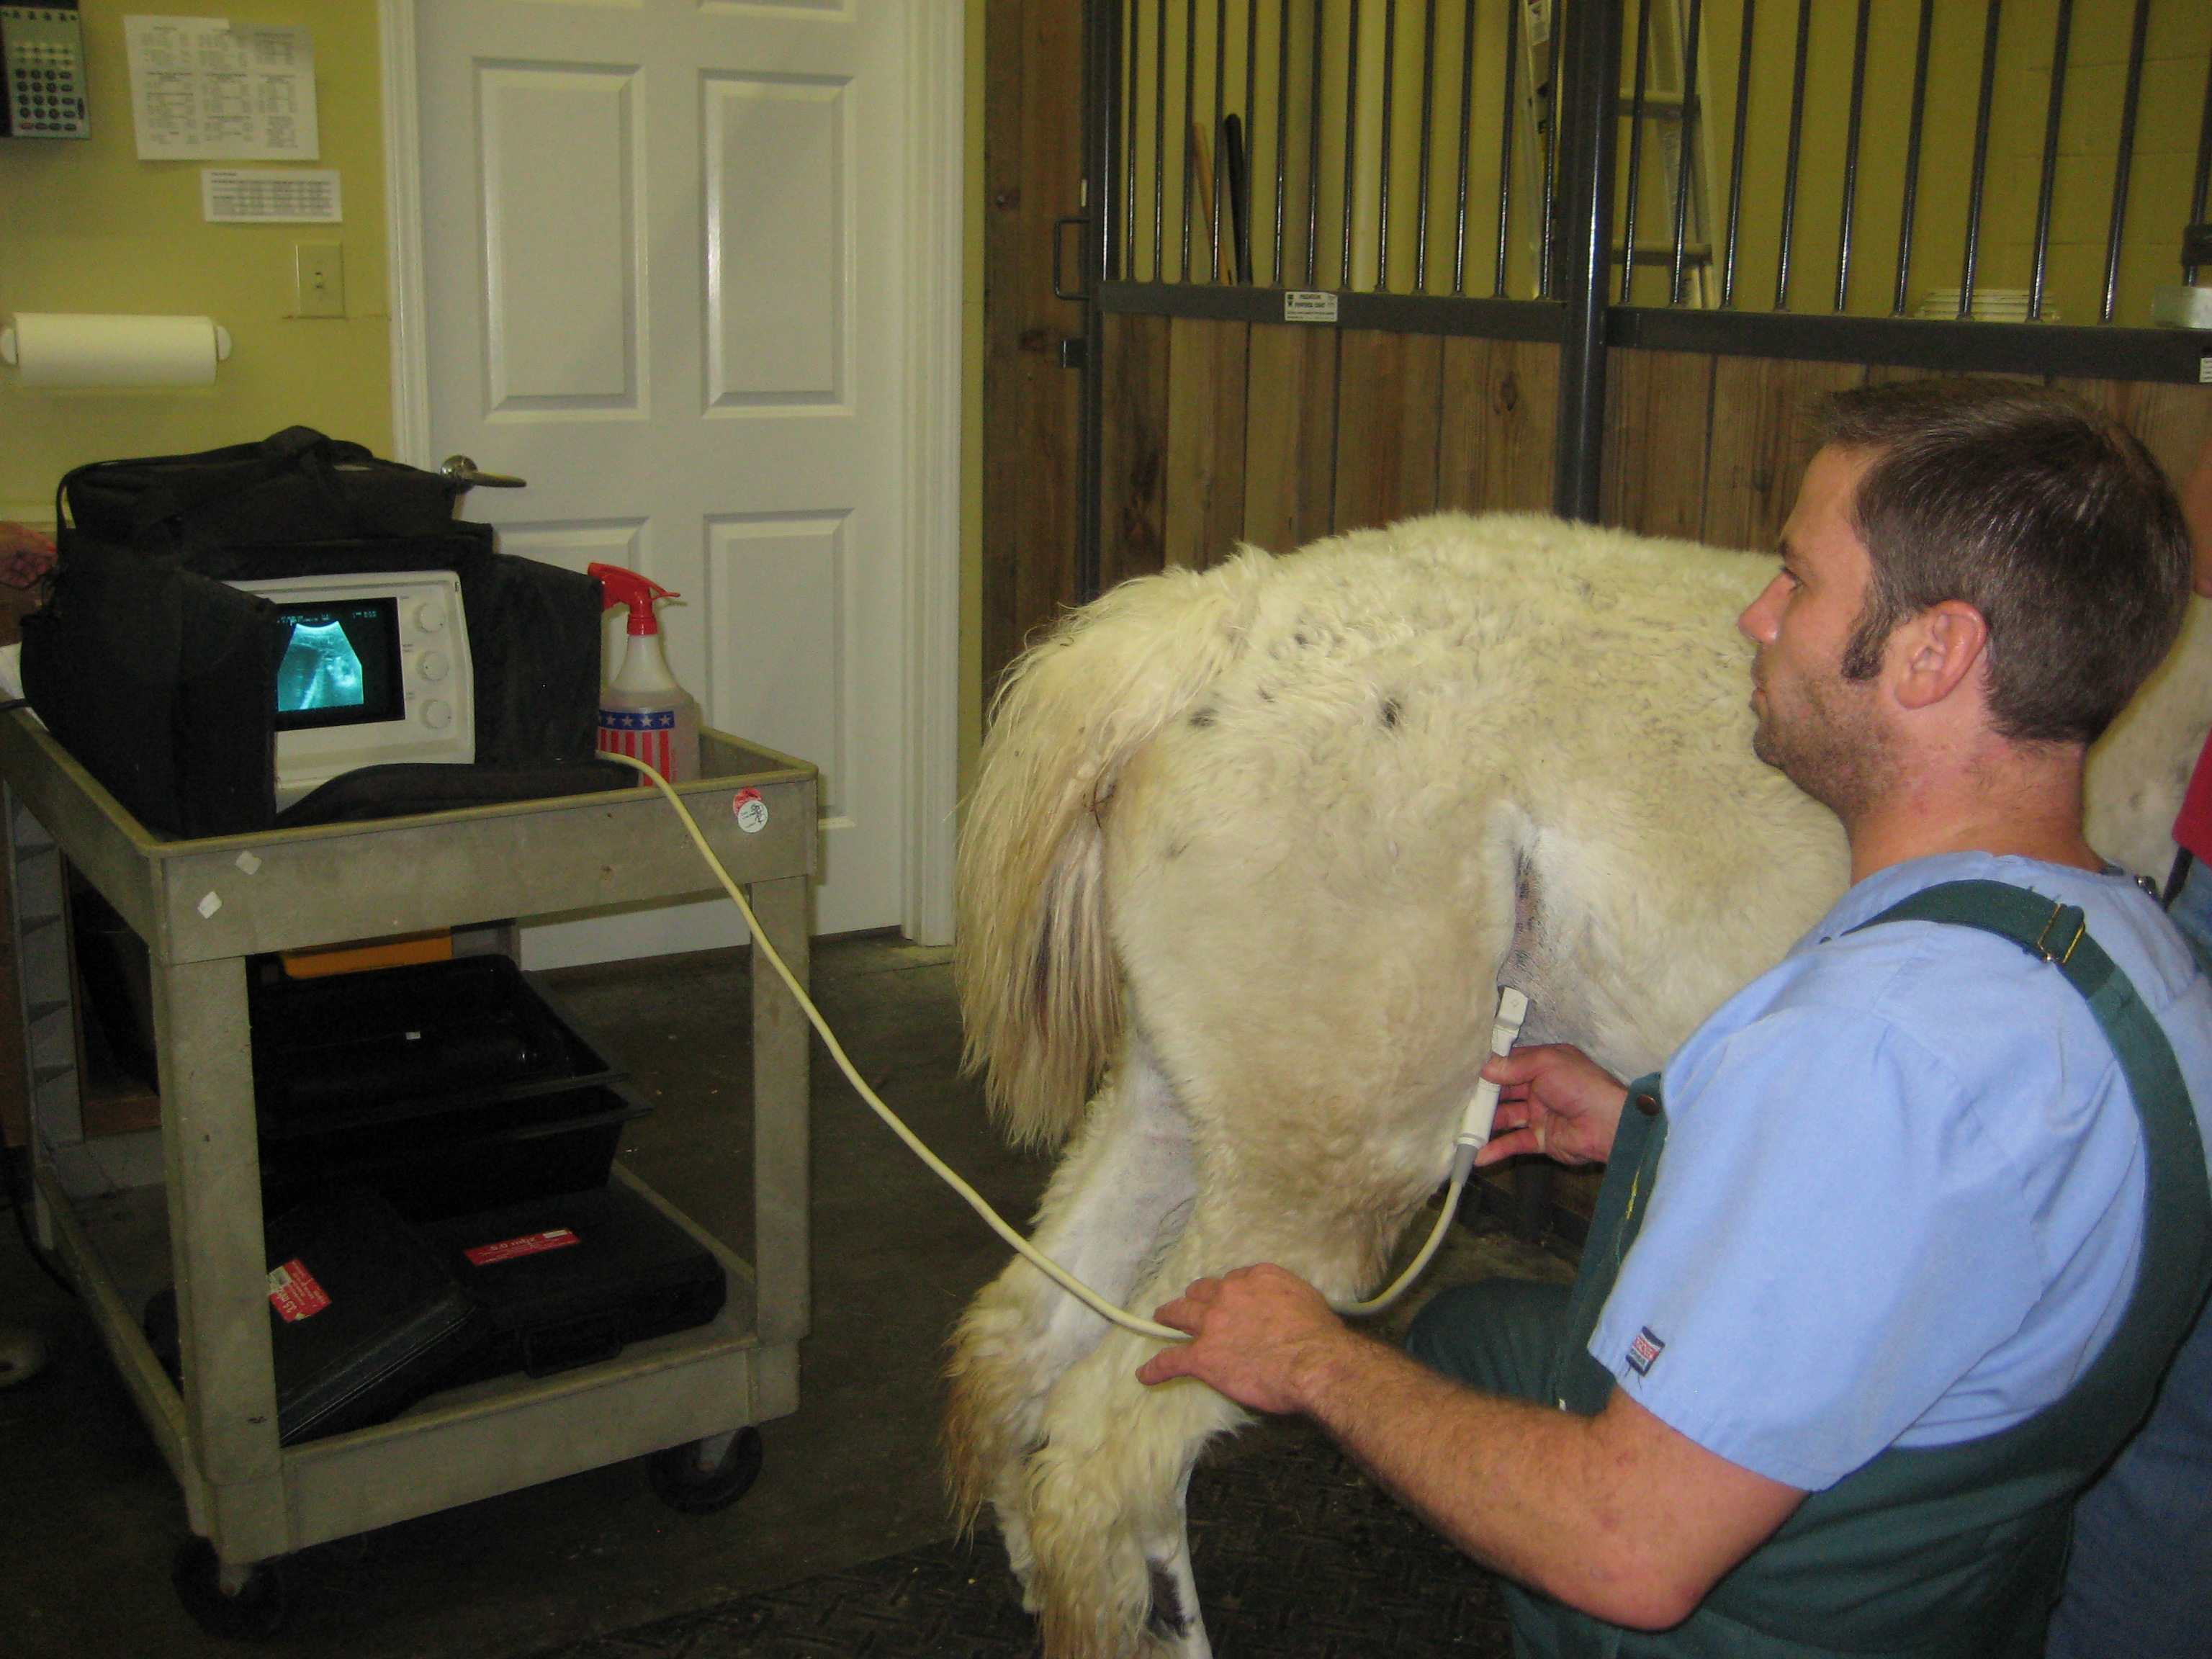 vip animal care creating personal relationships with